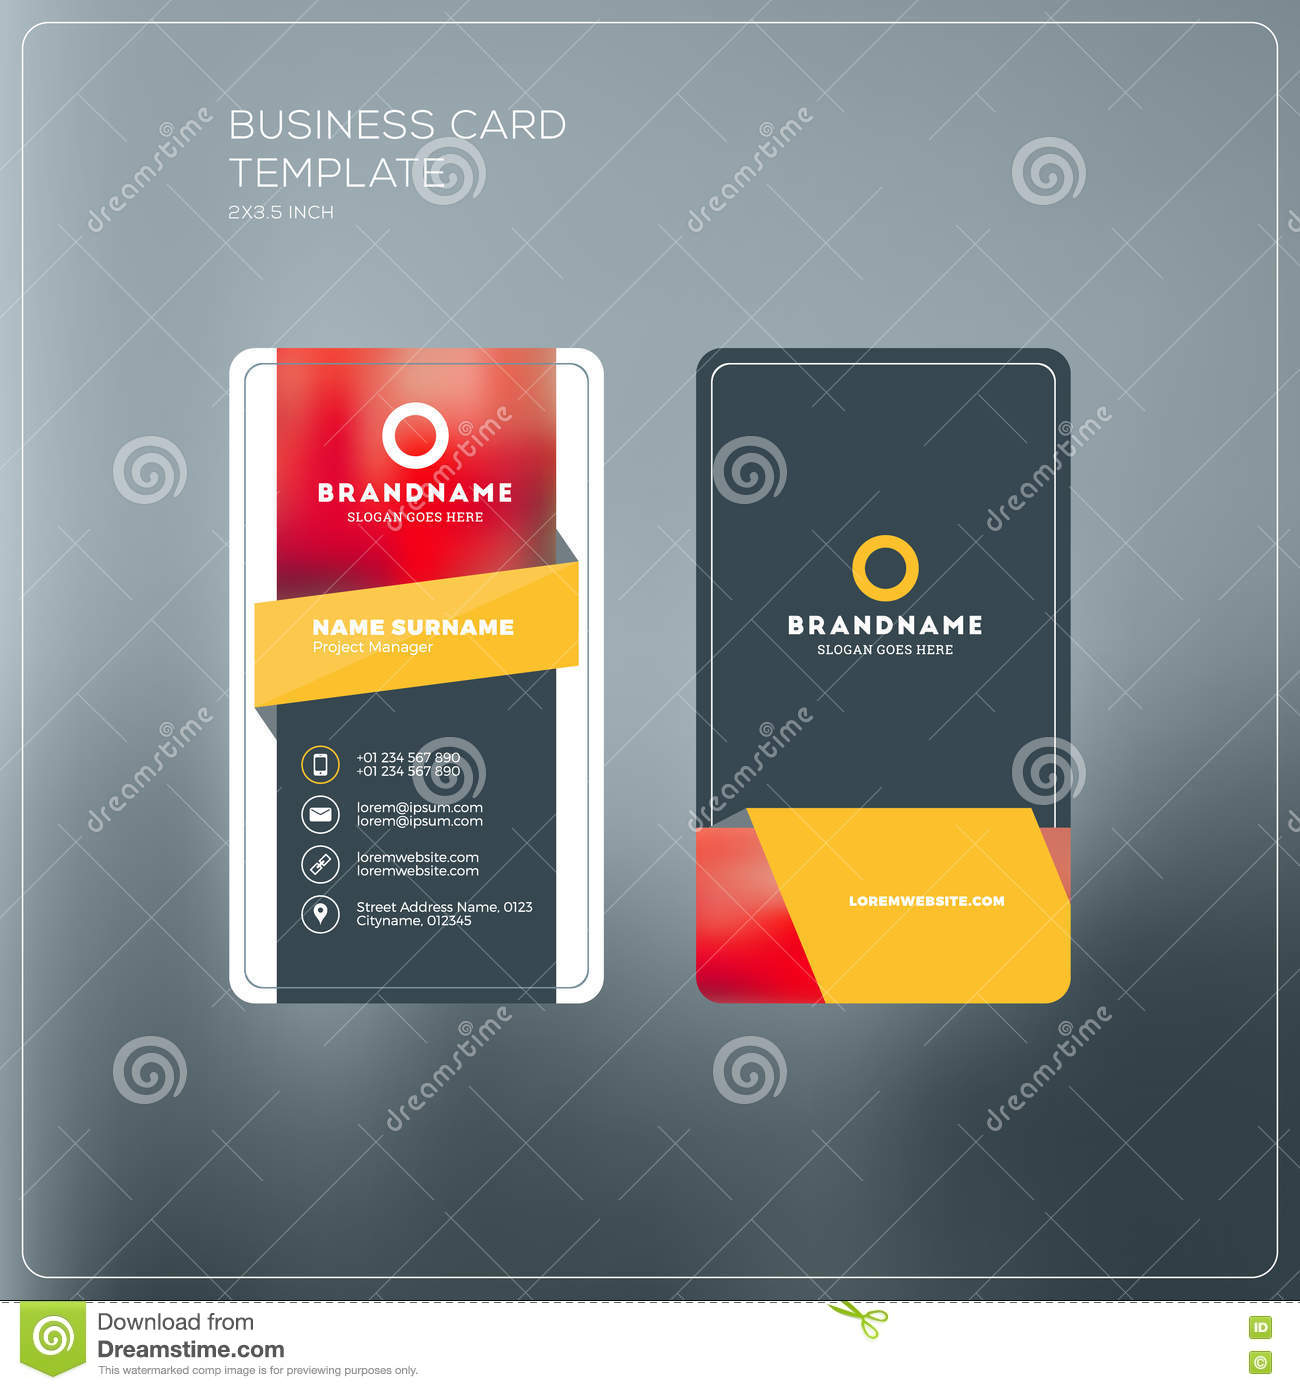 Vertical business card print template personal business card wi download vertical business card print template personal business card wi stock vector illustration of fbccfo Choice Image